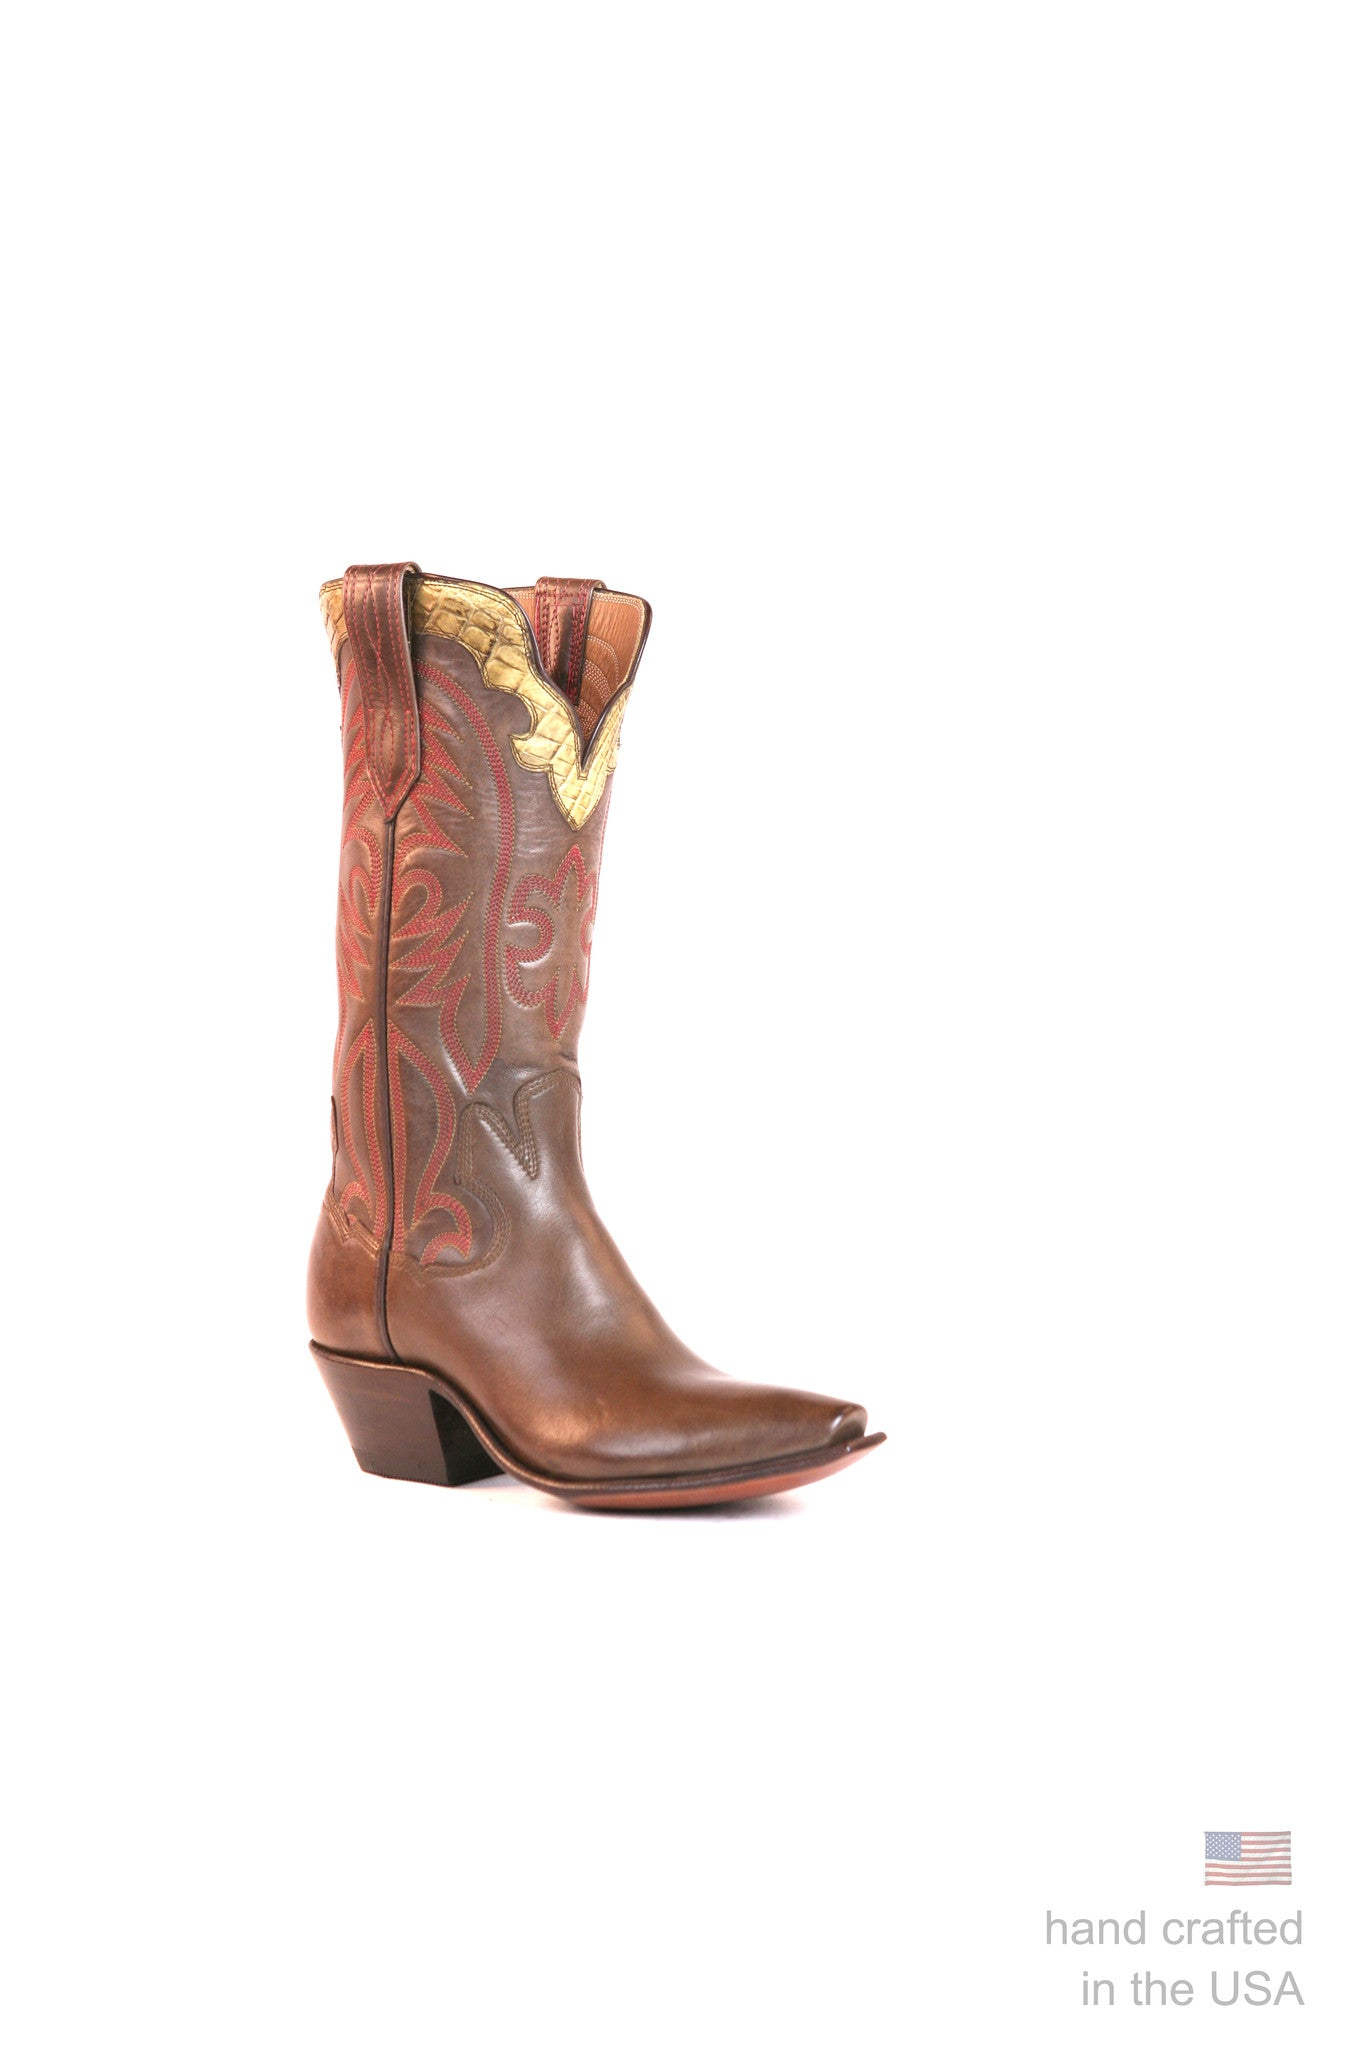 Singles: Boot 0015: Size 4.5 B